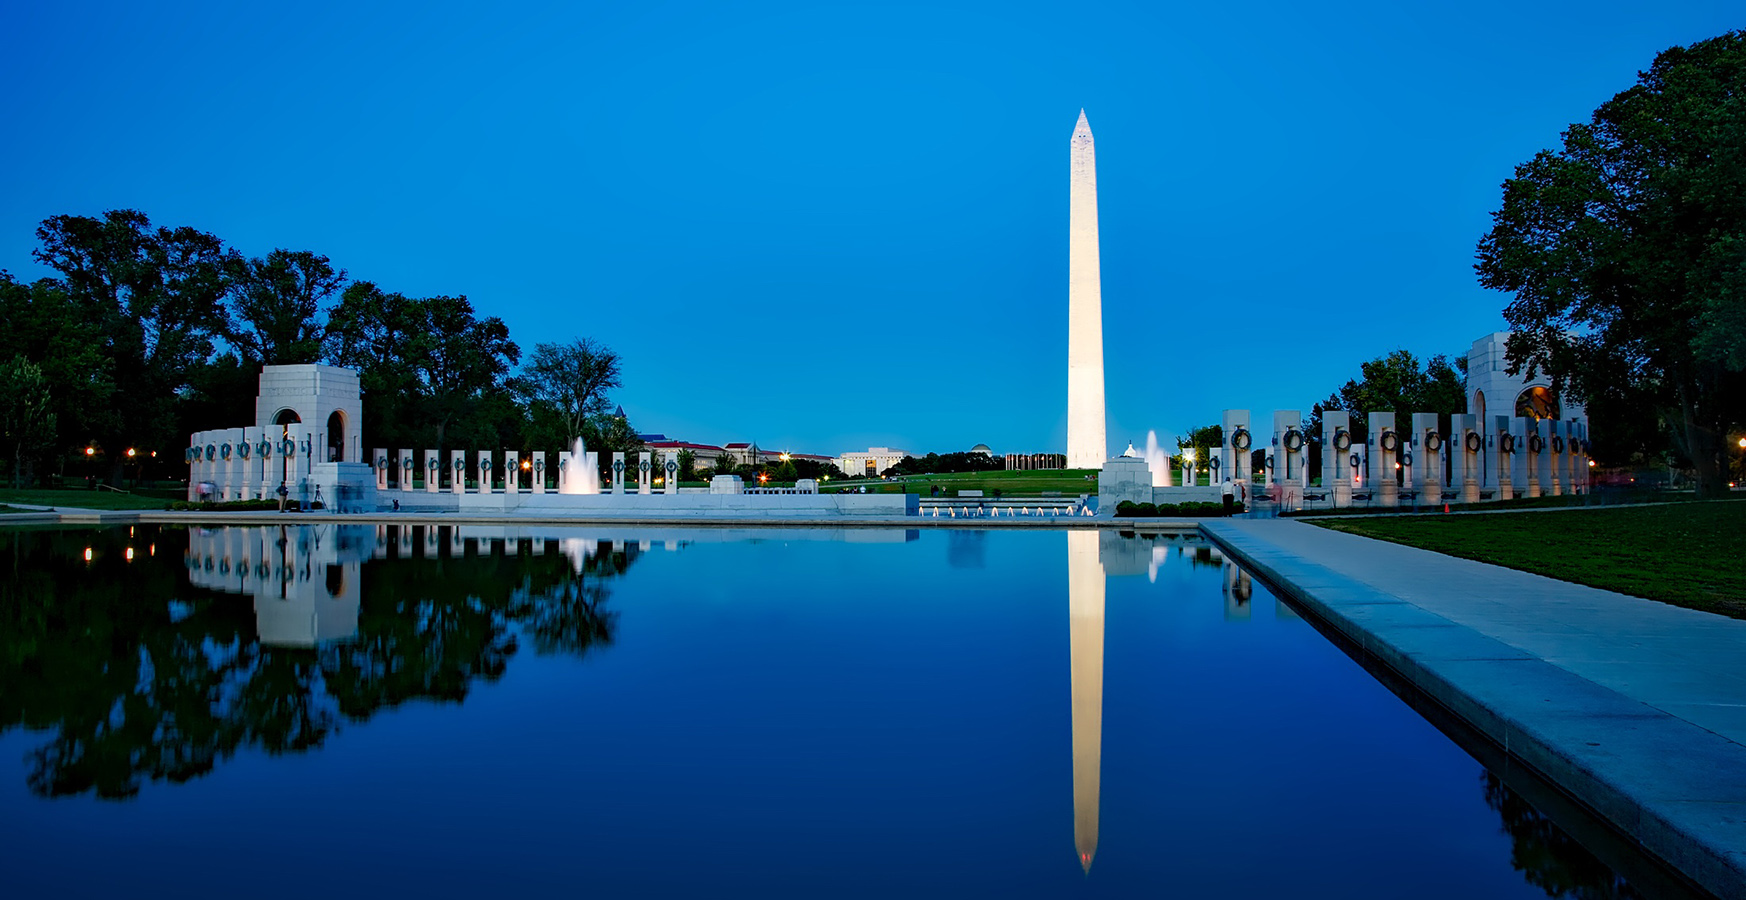 D.C. National Mall